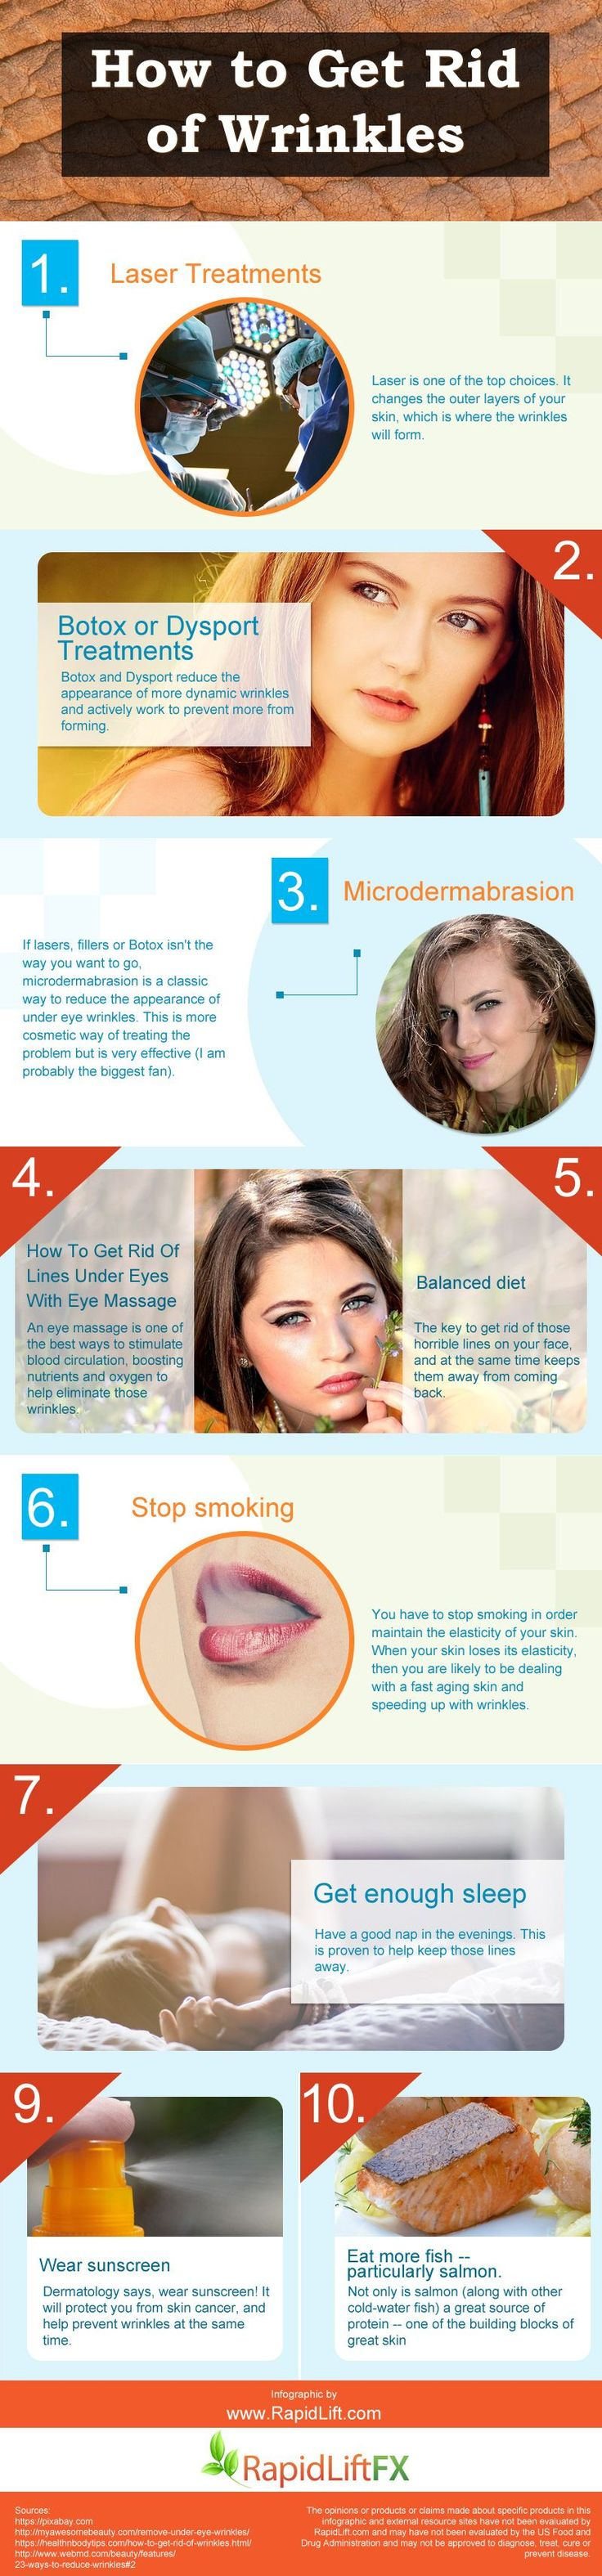 How to get Rid of Wrinkleswrinkle cream, Laser treatments, Botox, Microdermabrasion, massage